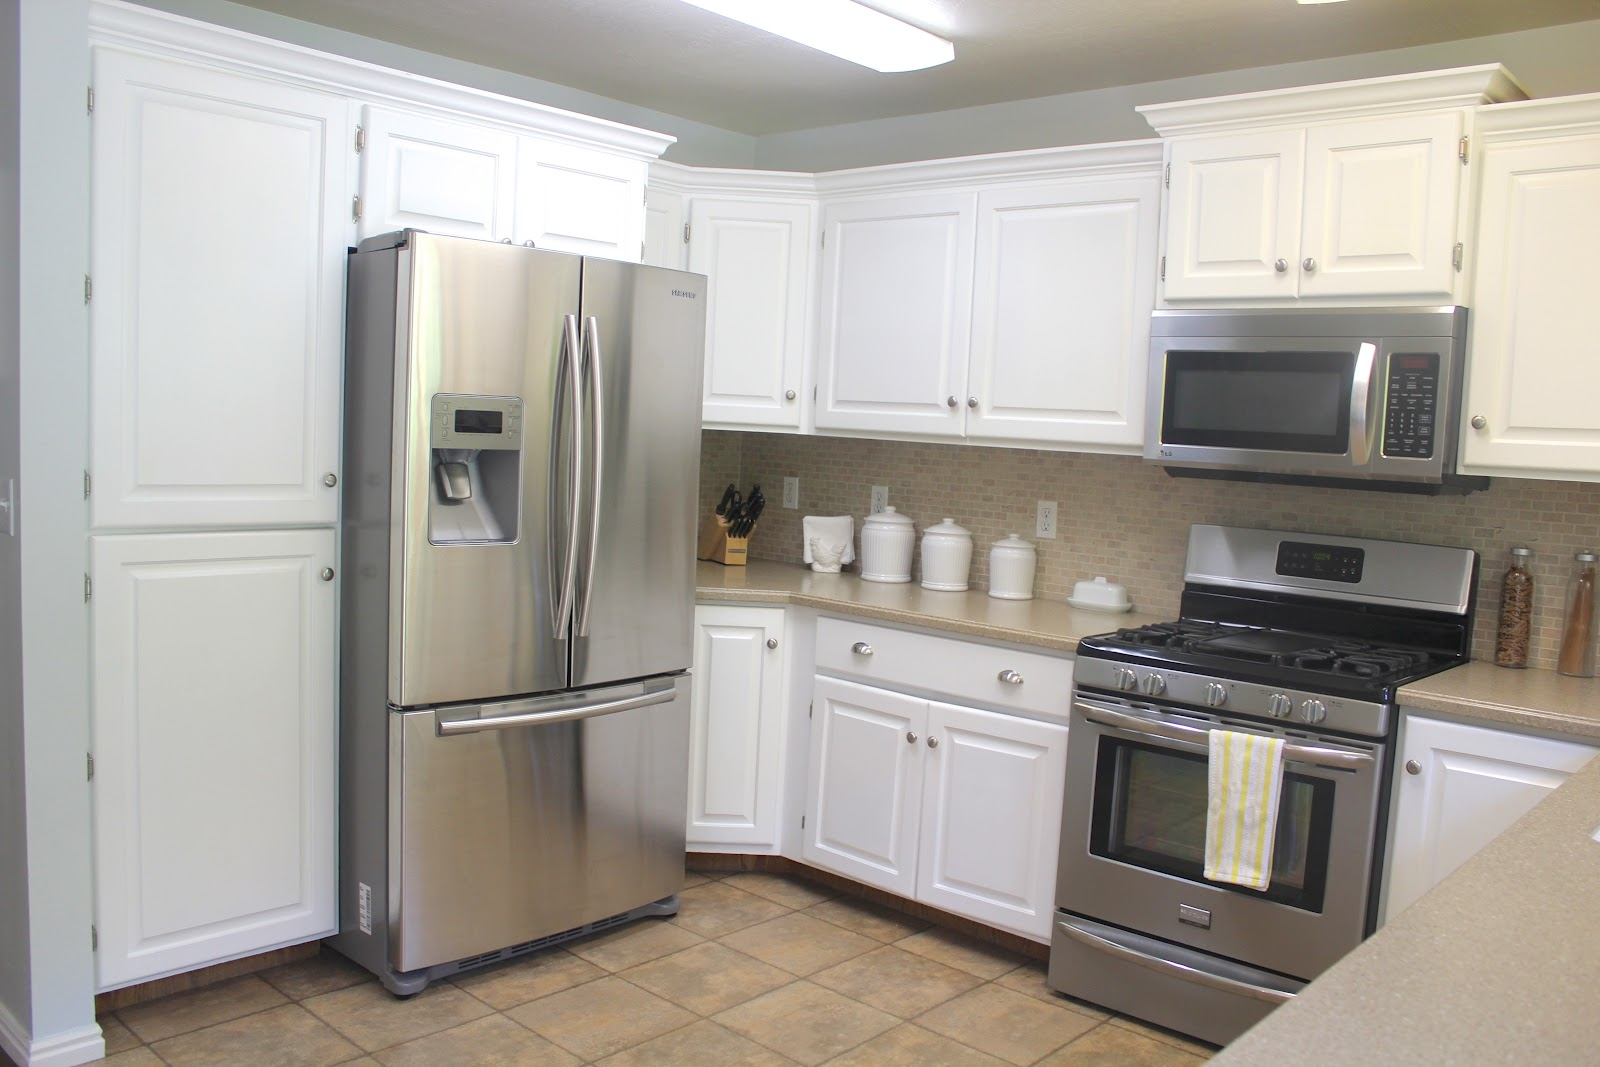 kitchen remodel big results on not so kitchen remodel utah Kitchen Remodel Big Results on a Not So Big Budget